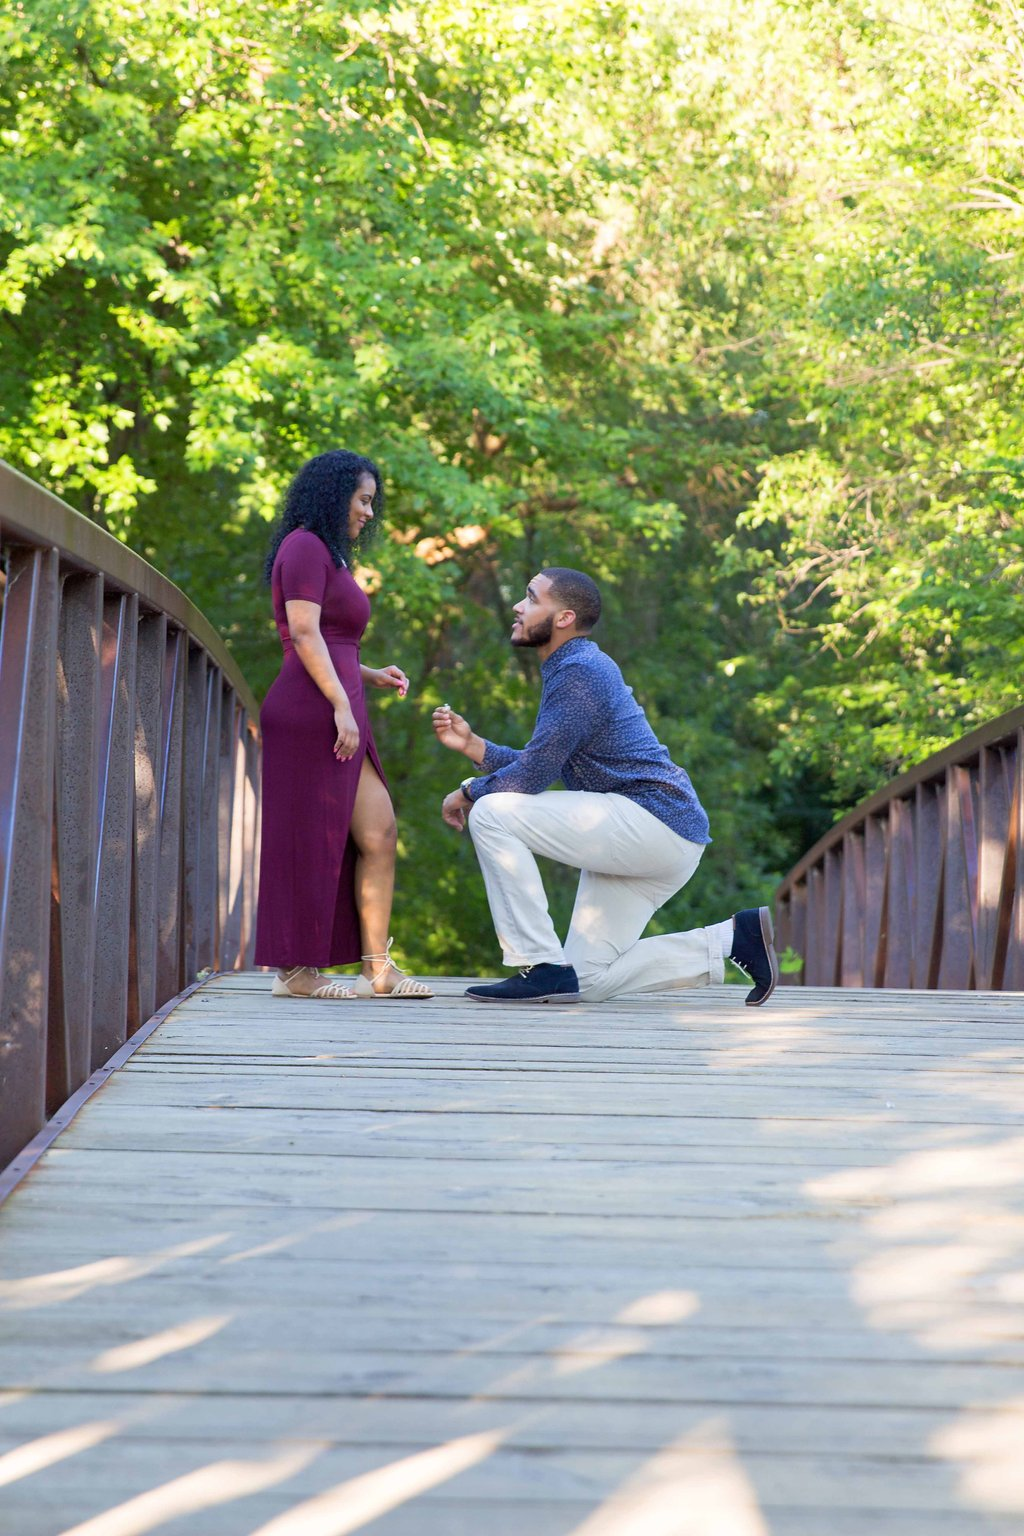 Lakeside Engagement Session in Minnesota- Nate and Fenet